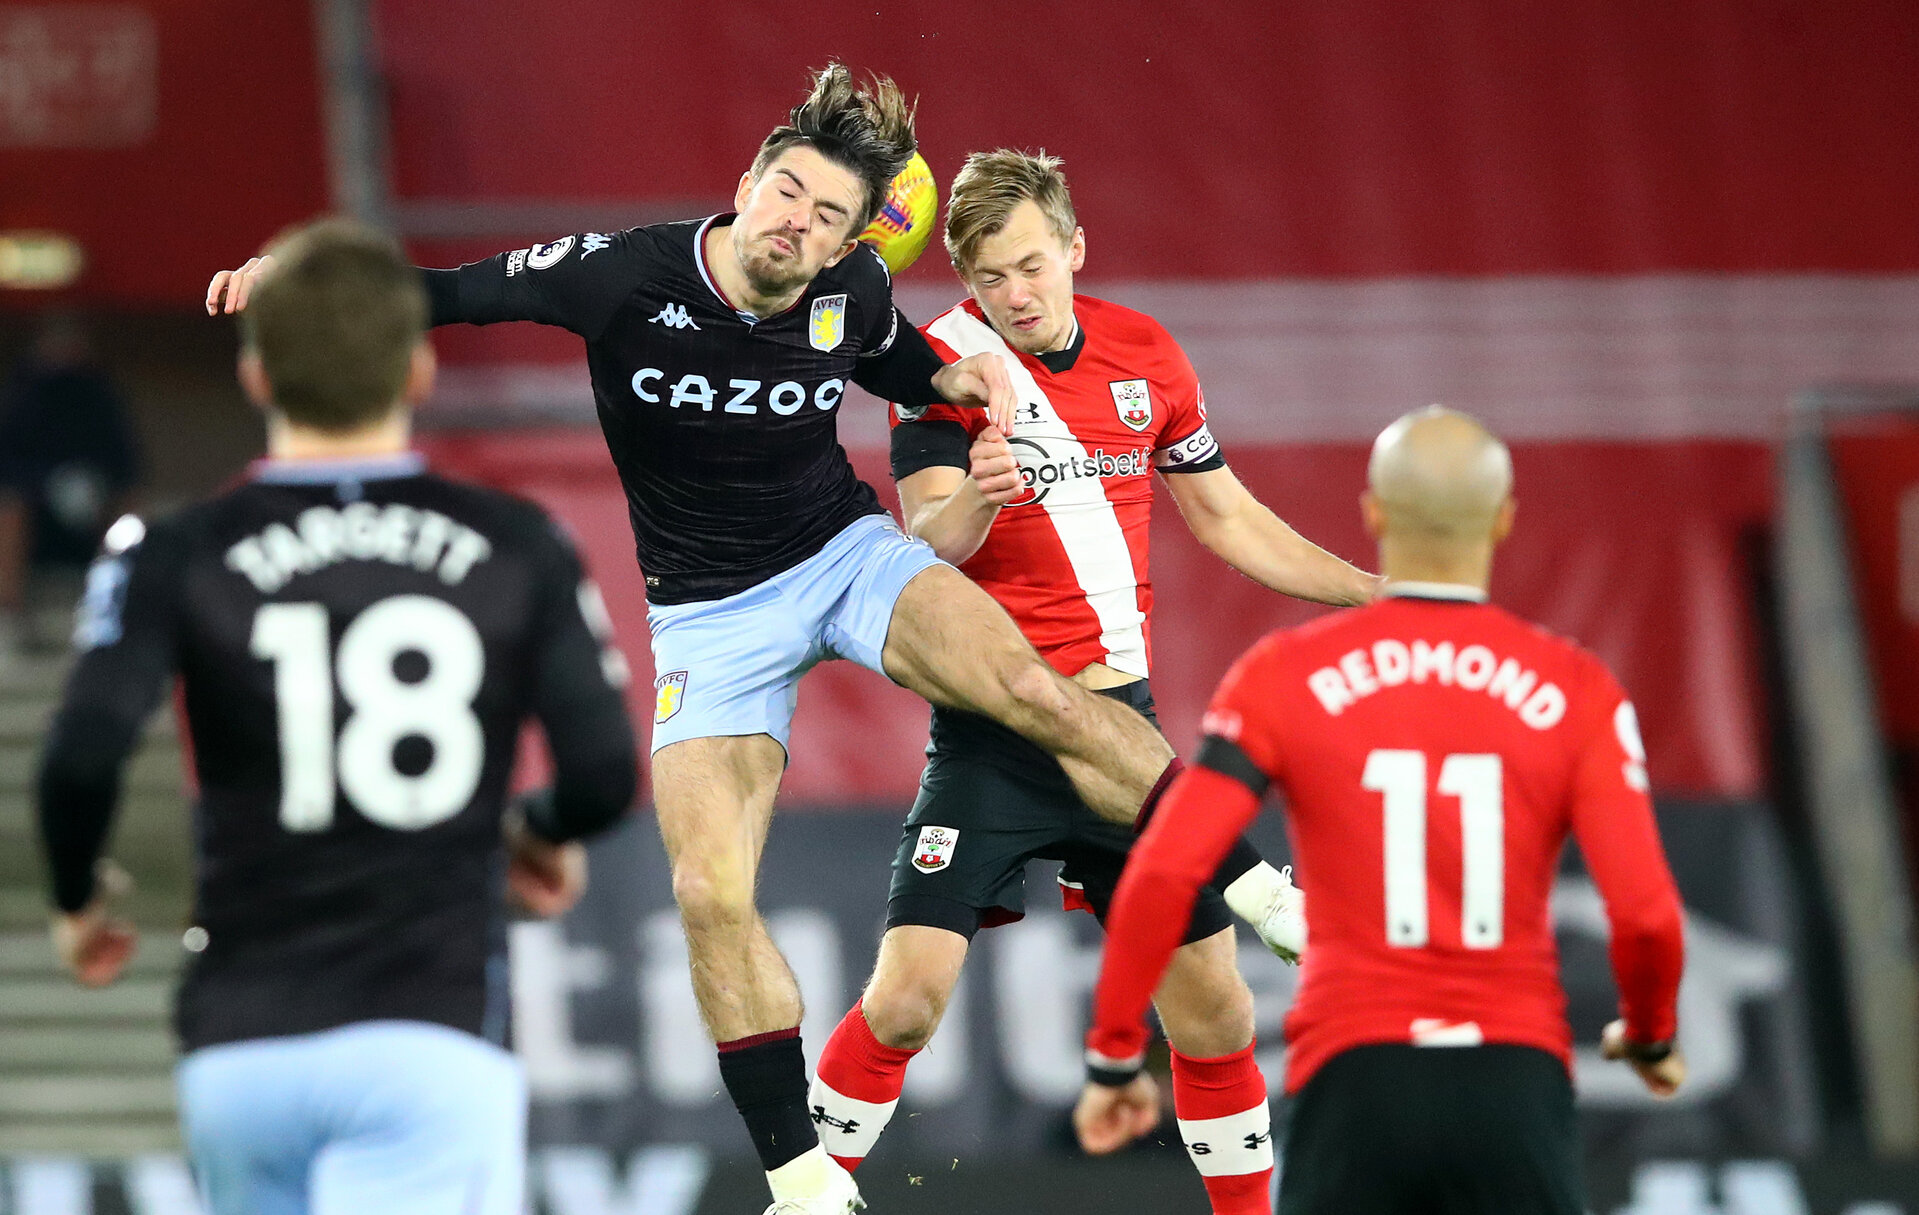 SOUTHAMPTON, ENGLAND - JANUARY 30: Jack Grealish(L) of Aston Villa and James Ward-Prowse(R) of Southampton during the Premier League match between Southampton and Aston Villa at St Mary's Stadium on January 30, 2021 in Southampton, England. Sporting stadiums around the UK remain under strict restrictions due to the Coronavirus Pandemic as Government social distancing laws prohibit fans inside venues resulting in games being played behind closed doors. (Photo by Matt Watson/Southampton FC via Getty Images)